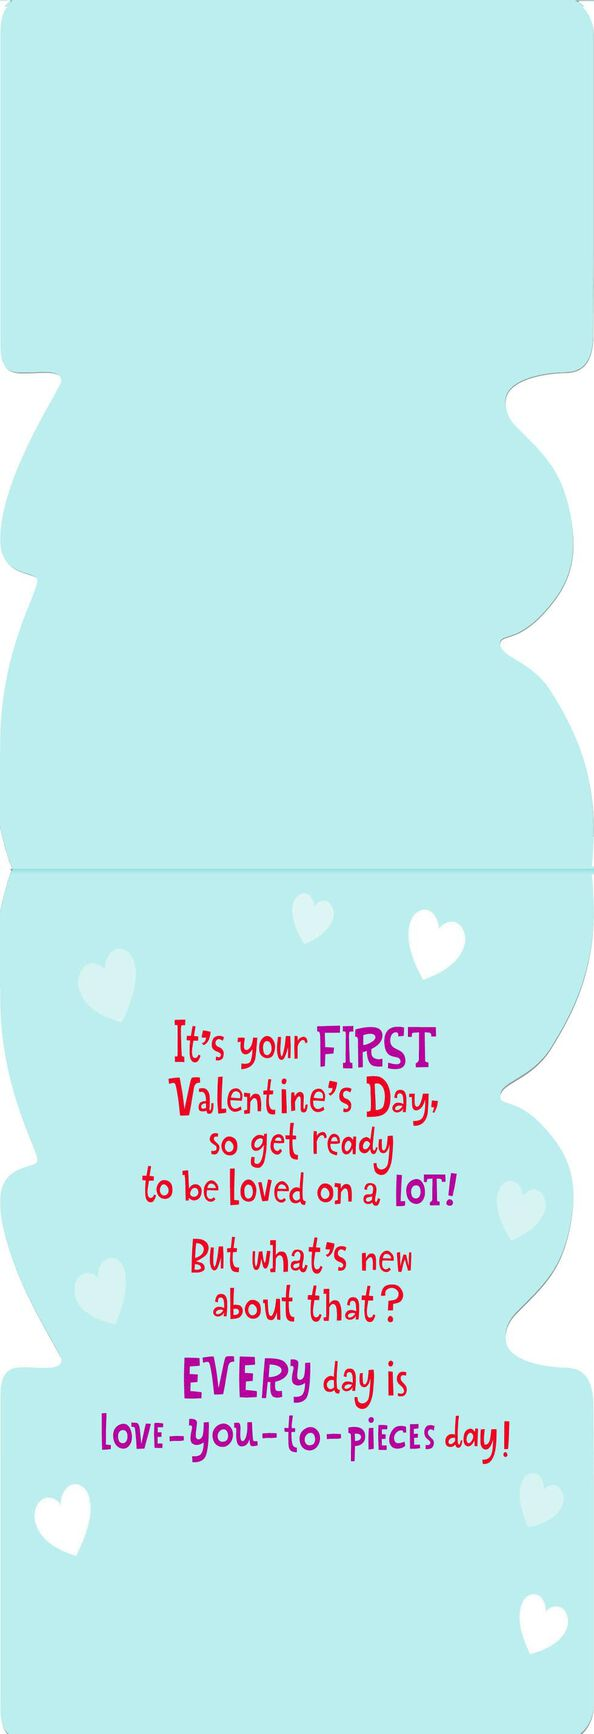 Peanuts Snoopy on Doghouse First Valentines Day Card for – First Valentines Day Cards